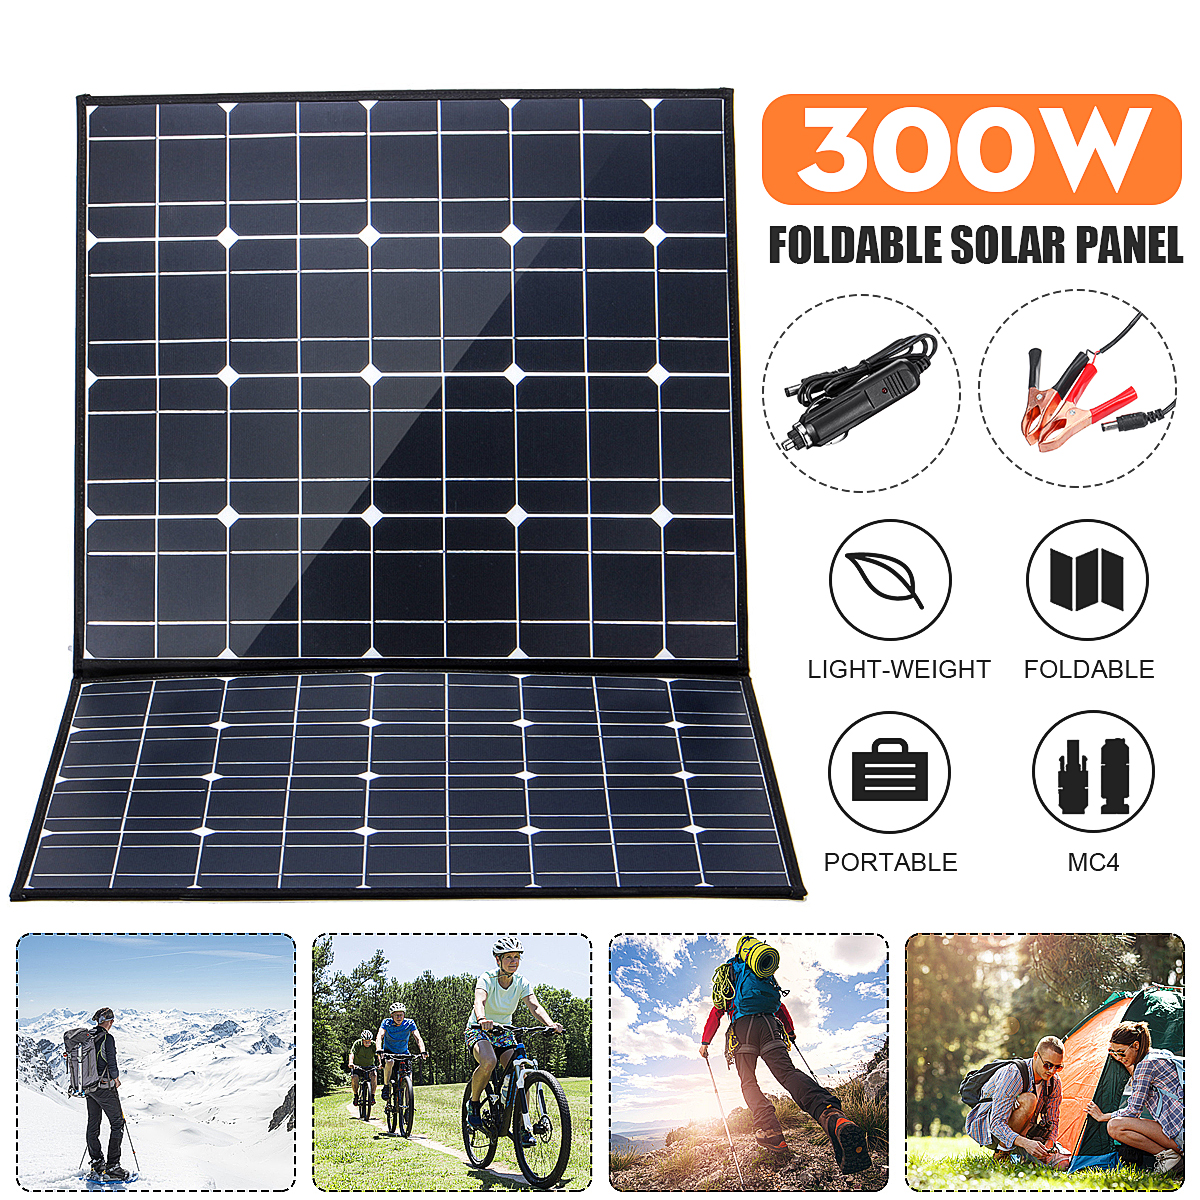 NB2-120 18V <font><b>300W</b></font> Monocrystallinel Folding <font><b>Solar</b></font> <font><b>Panel</b></font> Package with 1.5m for MC4 Cable+USB Interface for Outdoor Working image